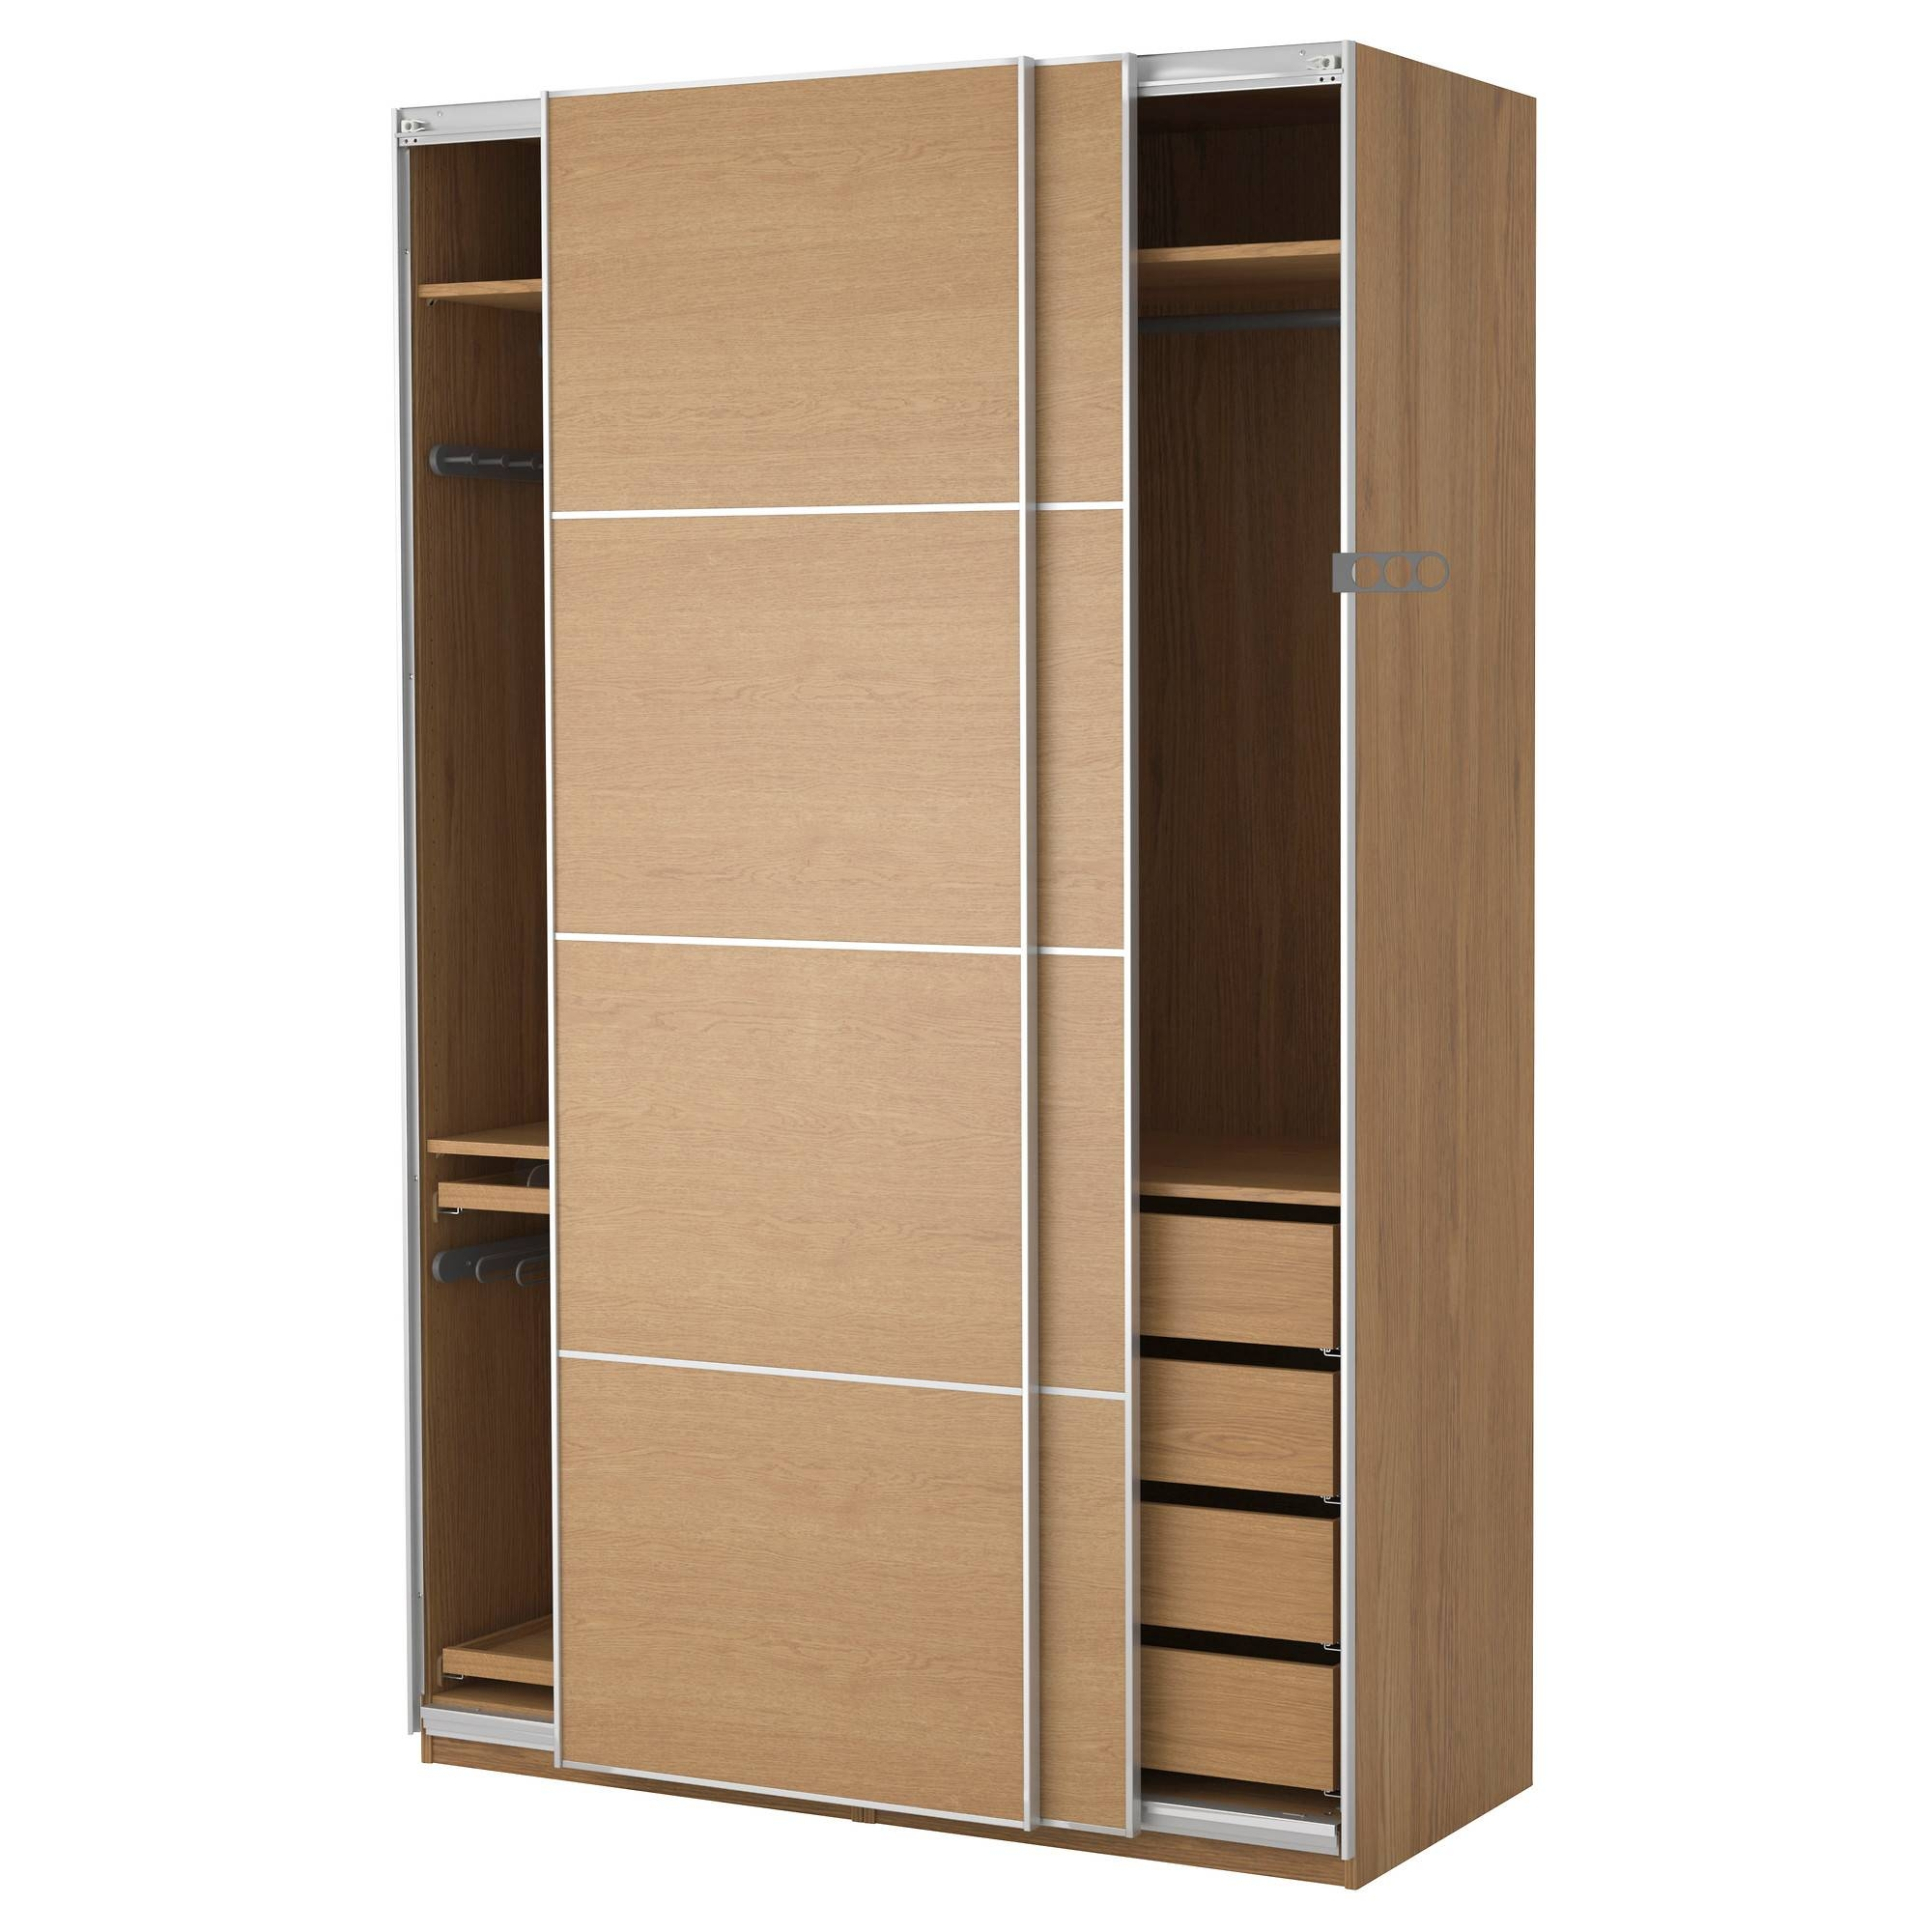 Tremendous Wooden Wardrobe Closet Ikea | Roselawnlutheran pertaining to Dark Wood Wardrobe Closet (Image 23 of 30)